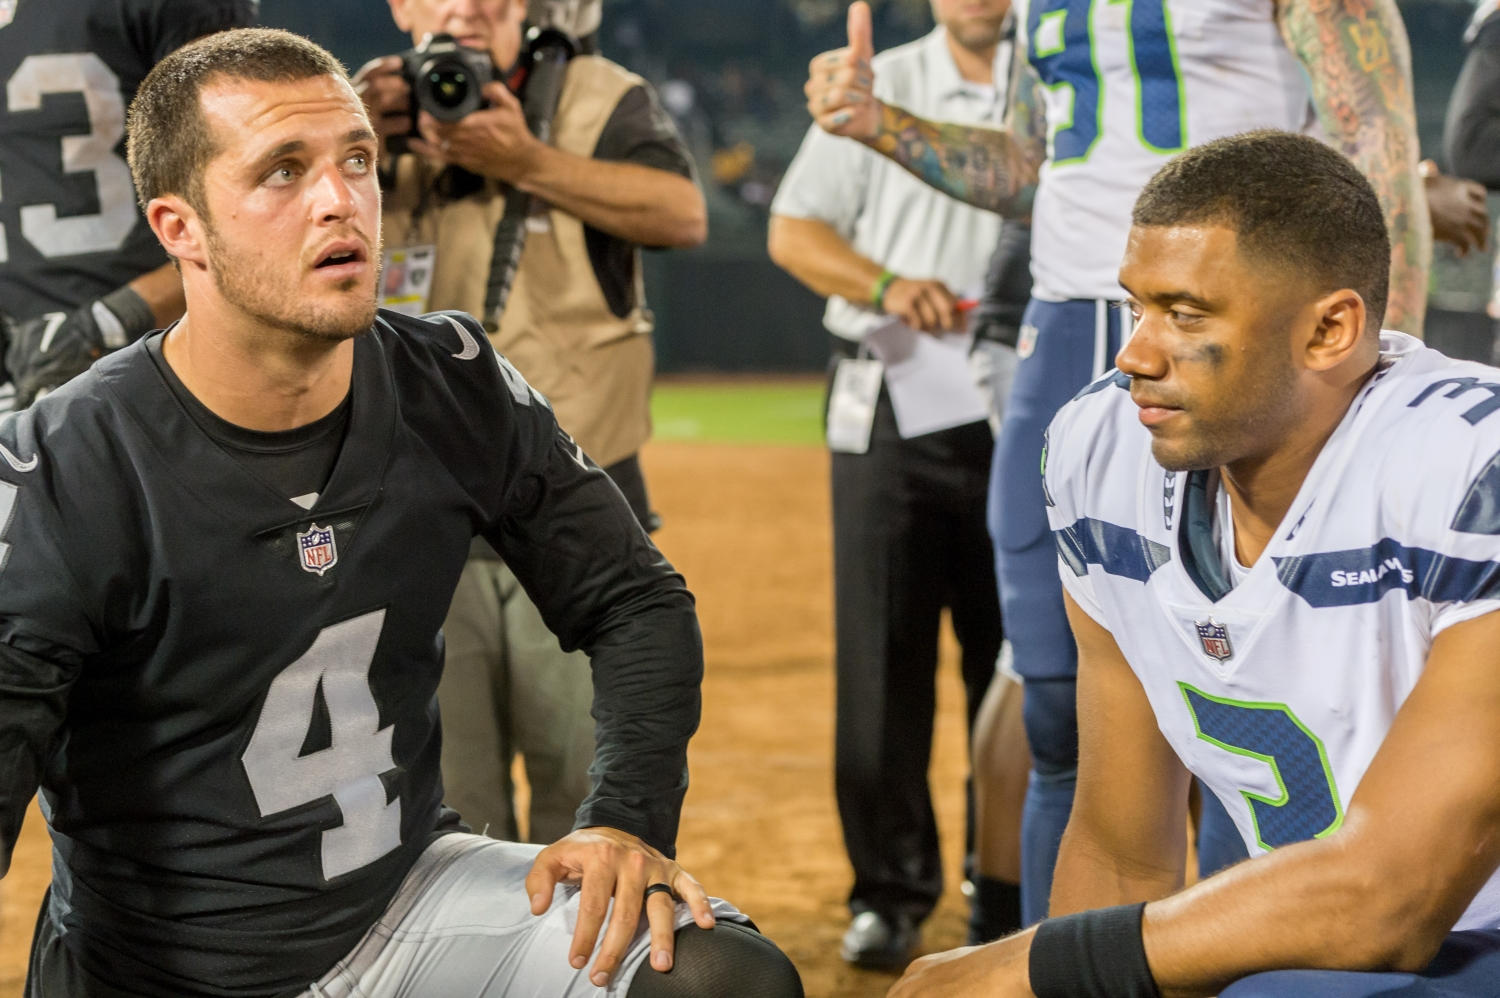 Derek Carr and Russell Wilson kneel in prayer following a game between the Raiders and the Seahawks in August 2017.